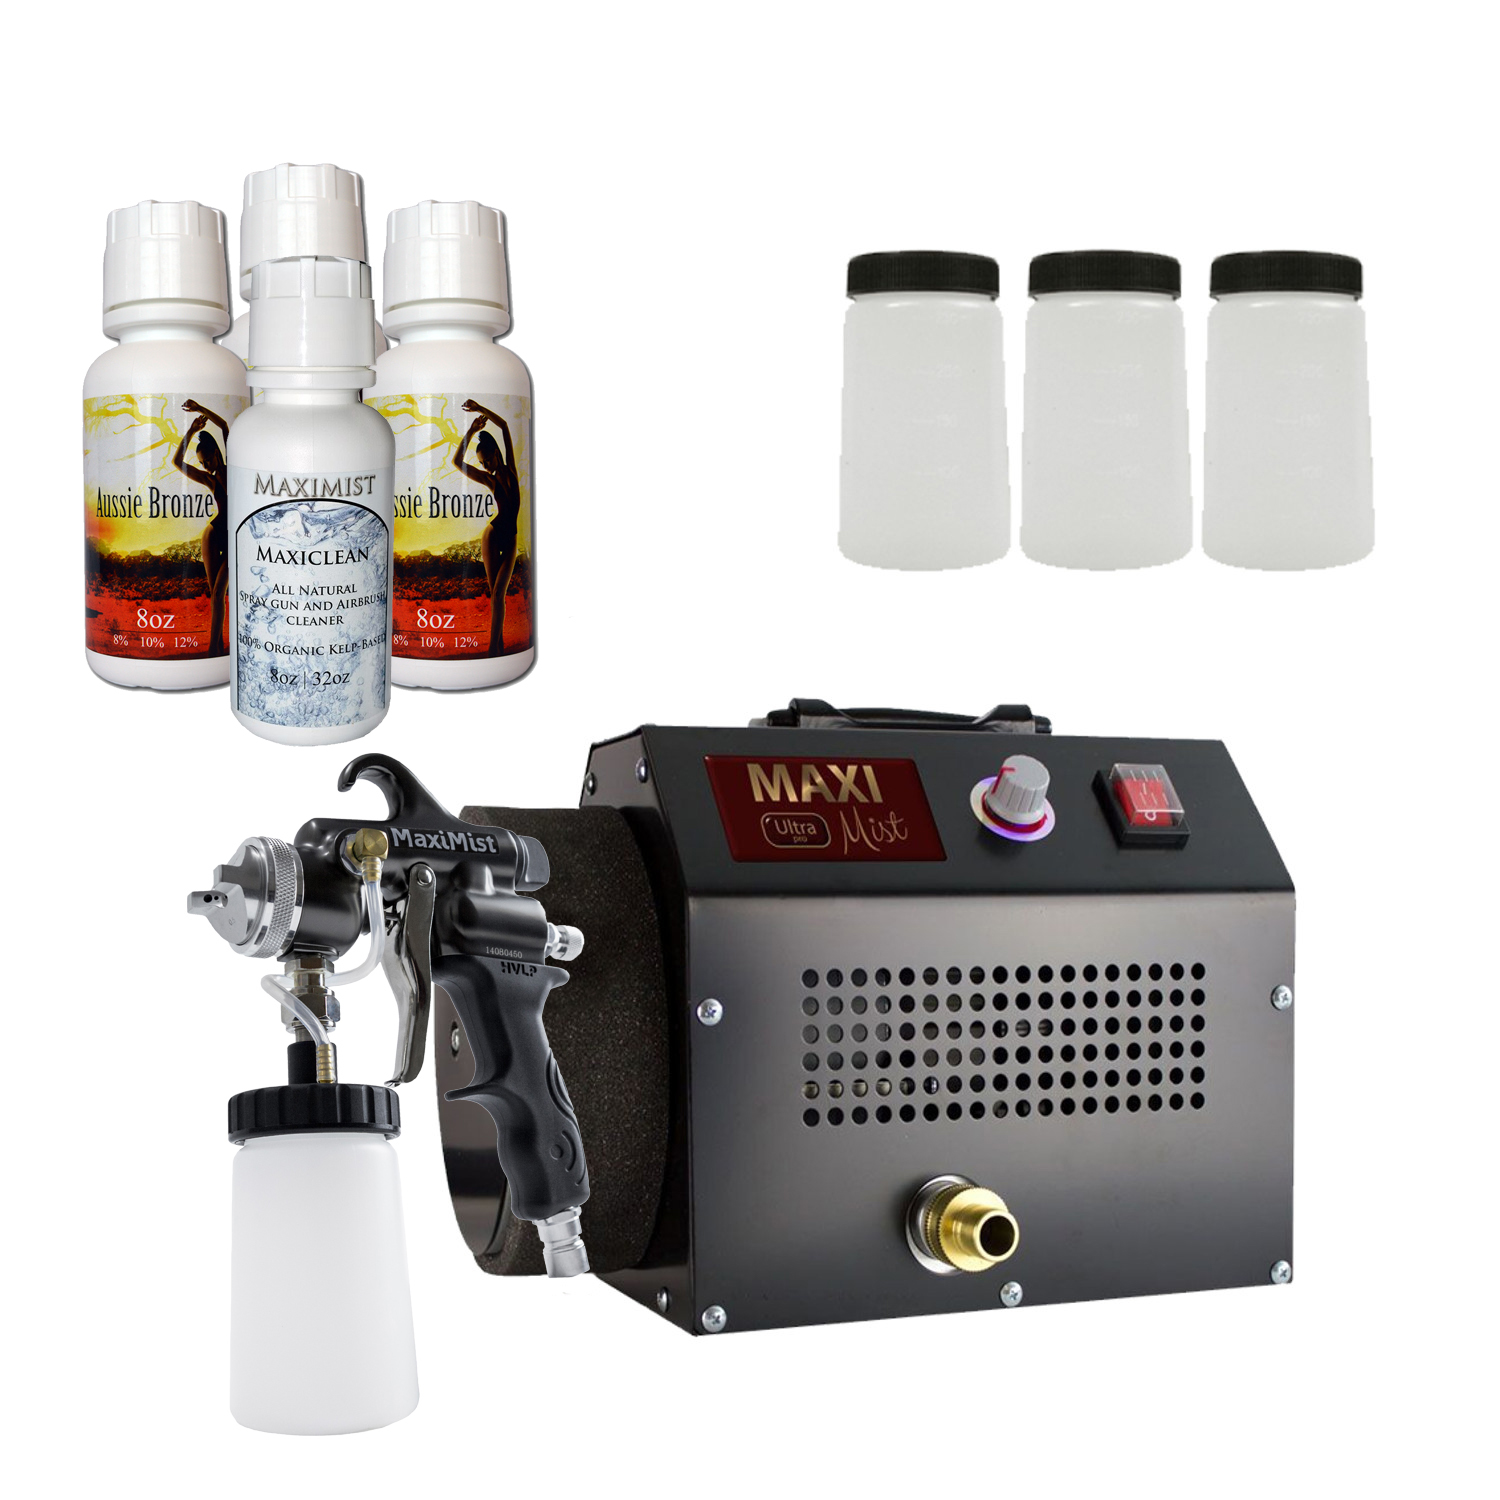 Tampa Bay Tanning Spray Products